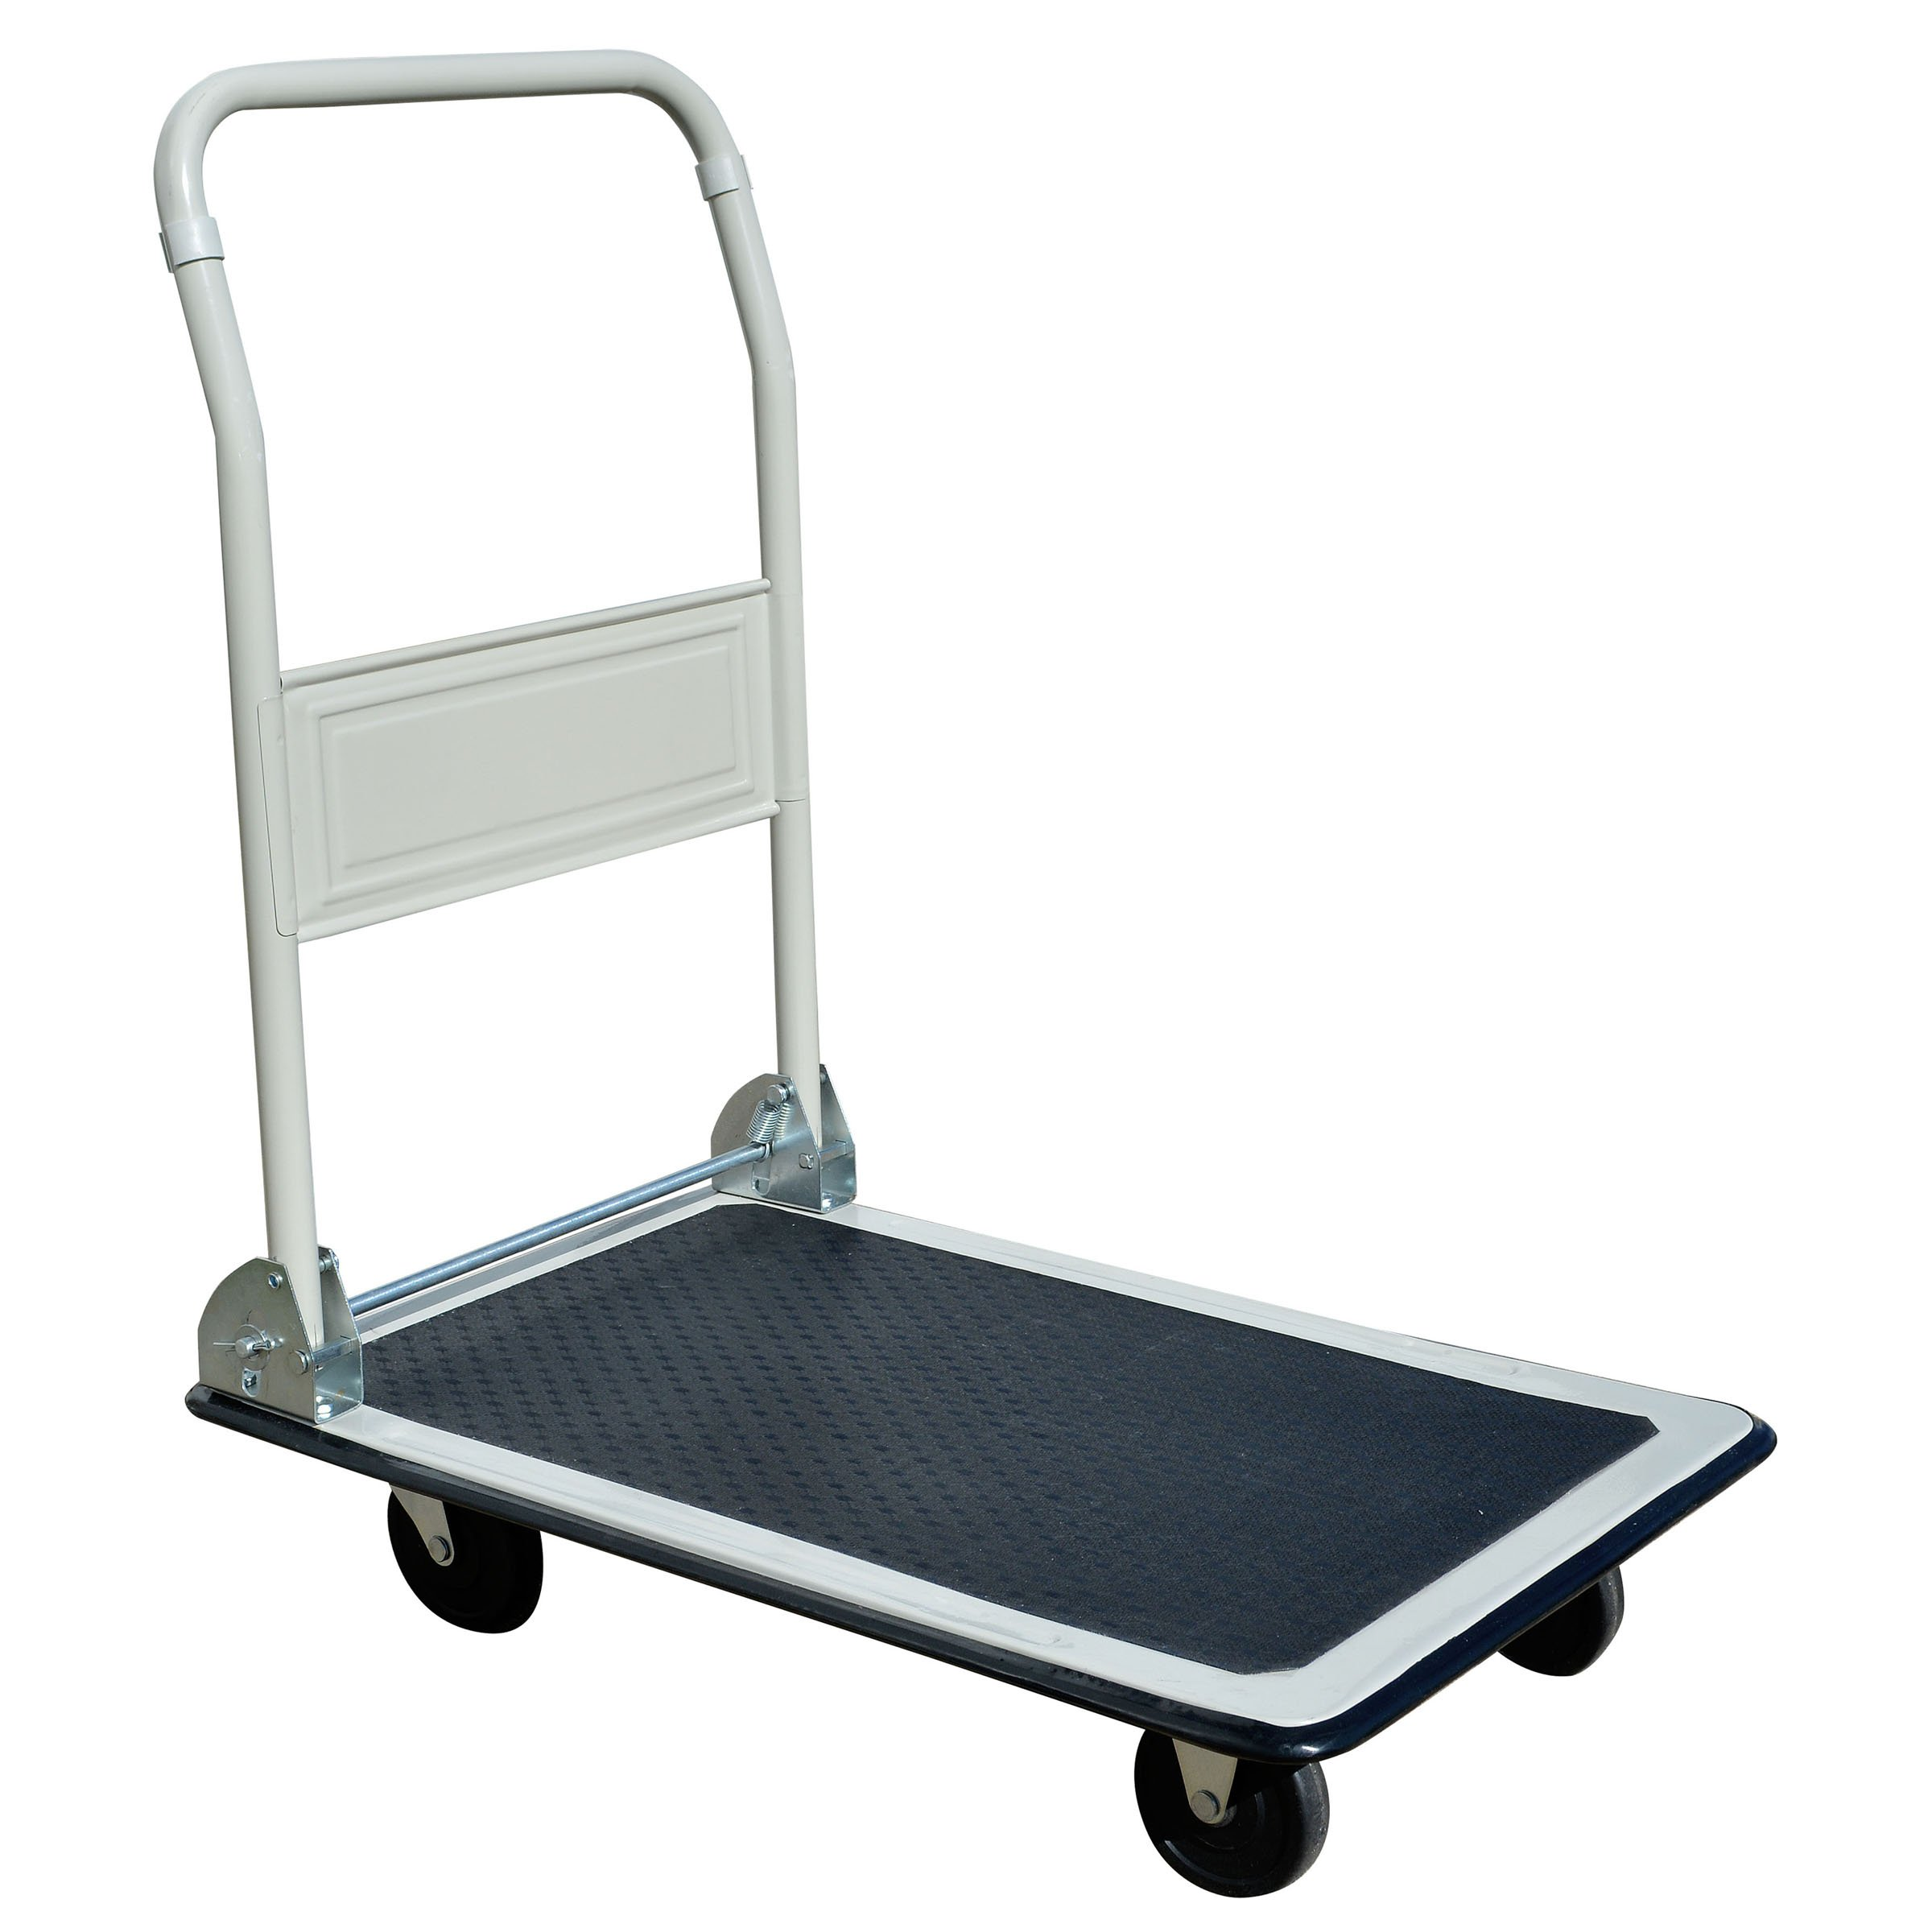 Pro-Series 700473 Folding Platform Truck, 330-Pound Capacity